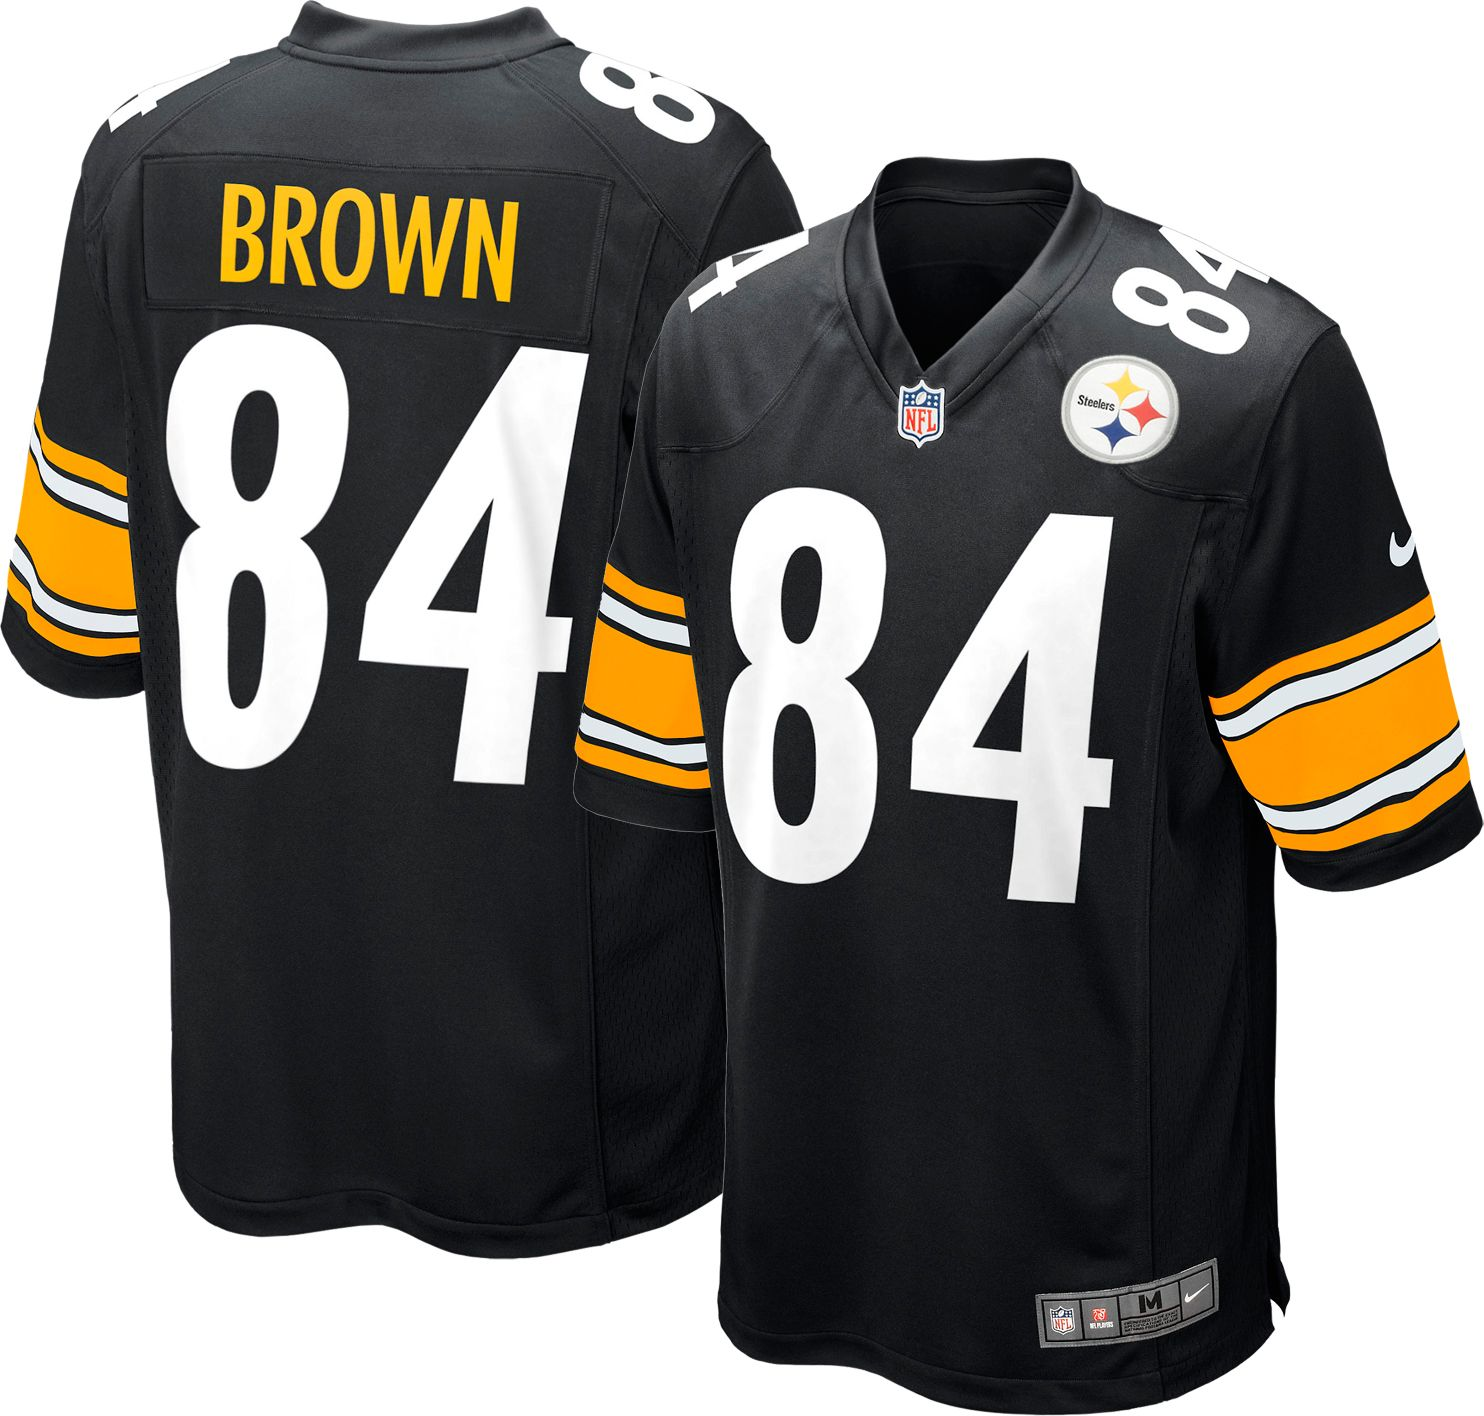 antonio brown jersey men's small